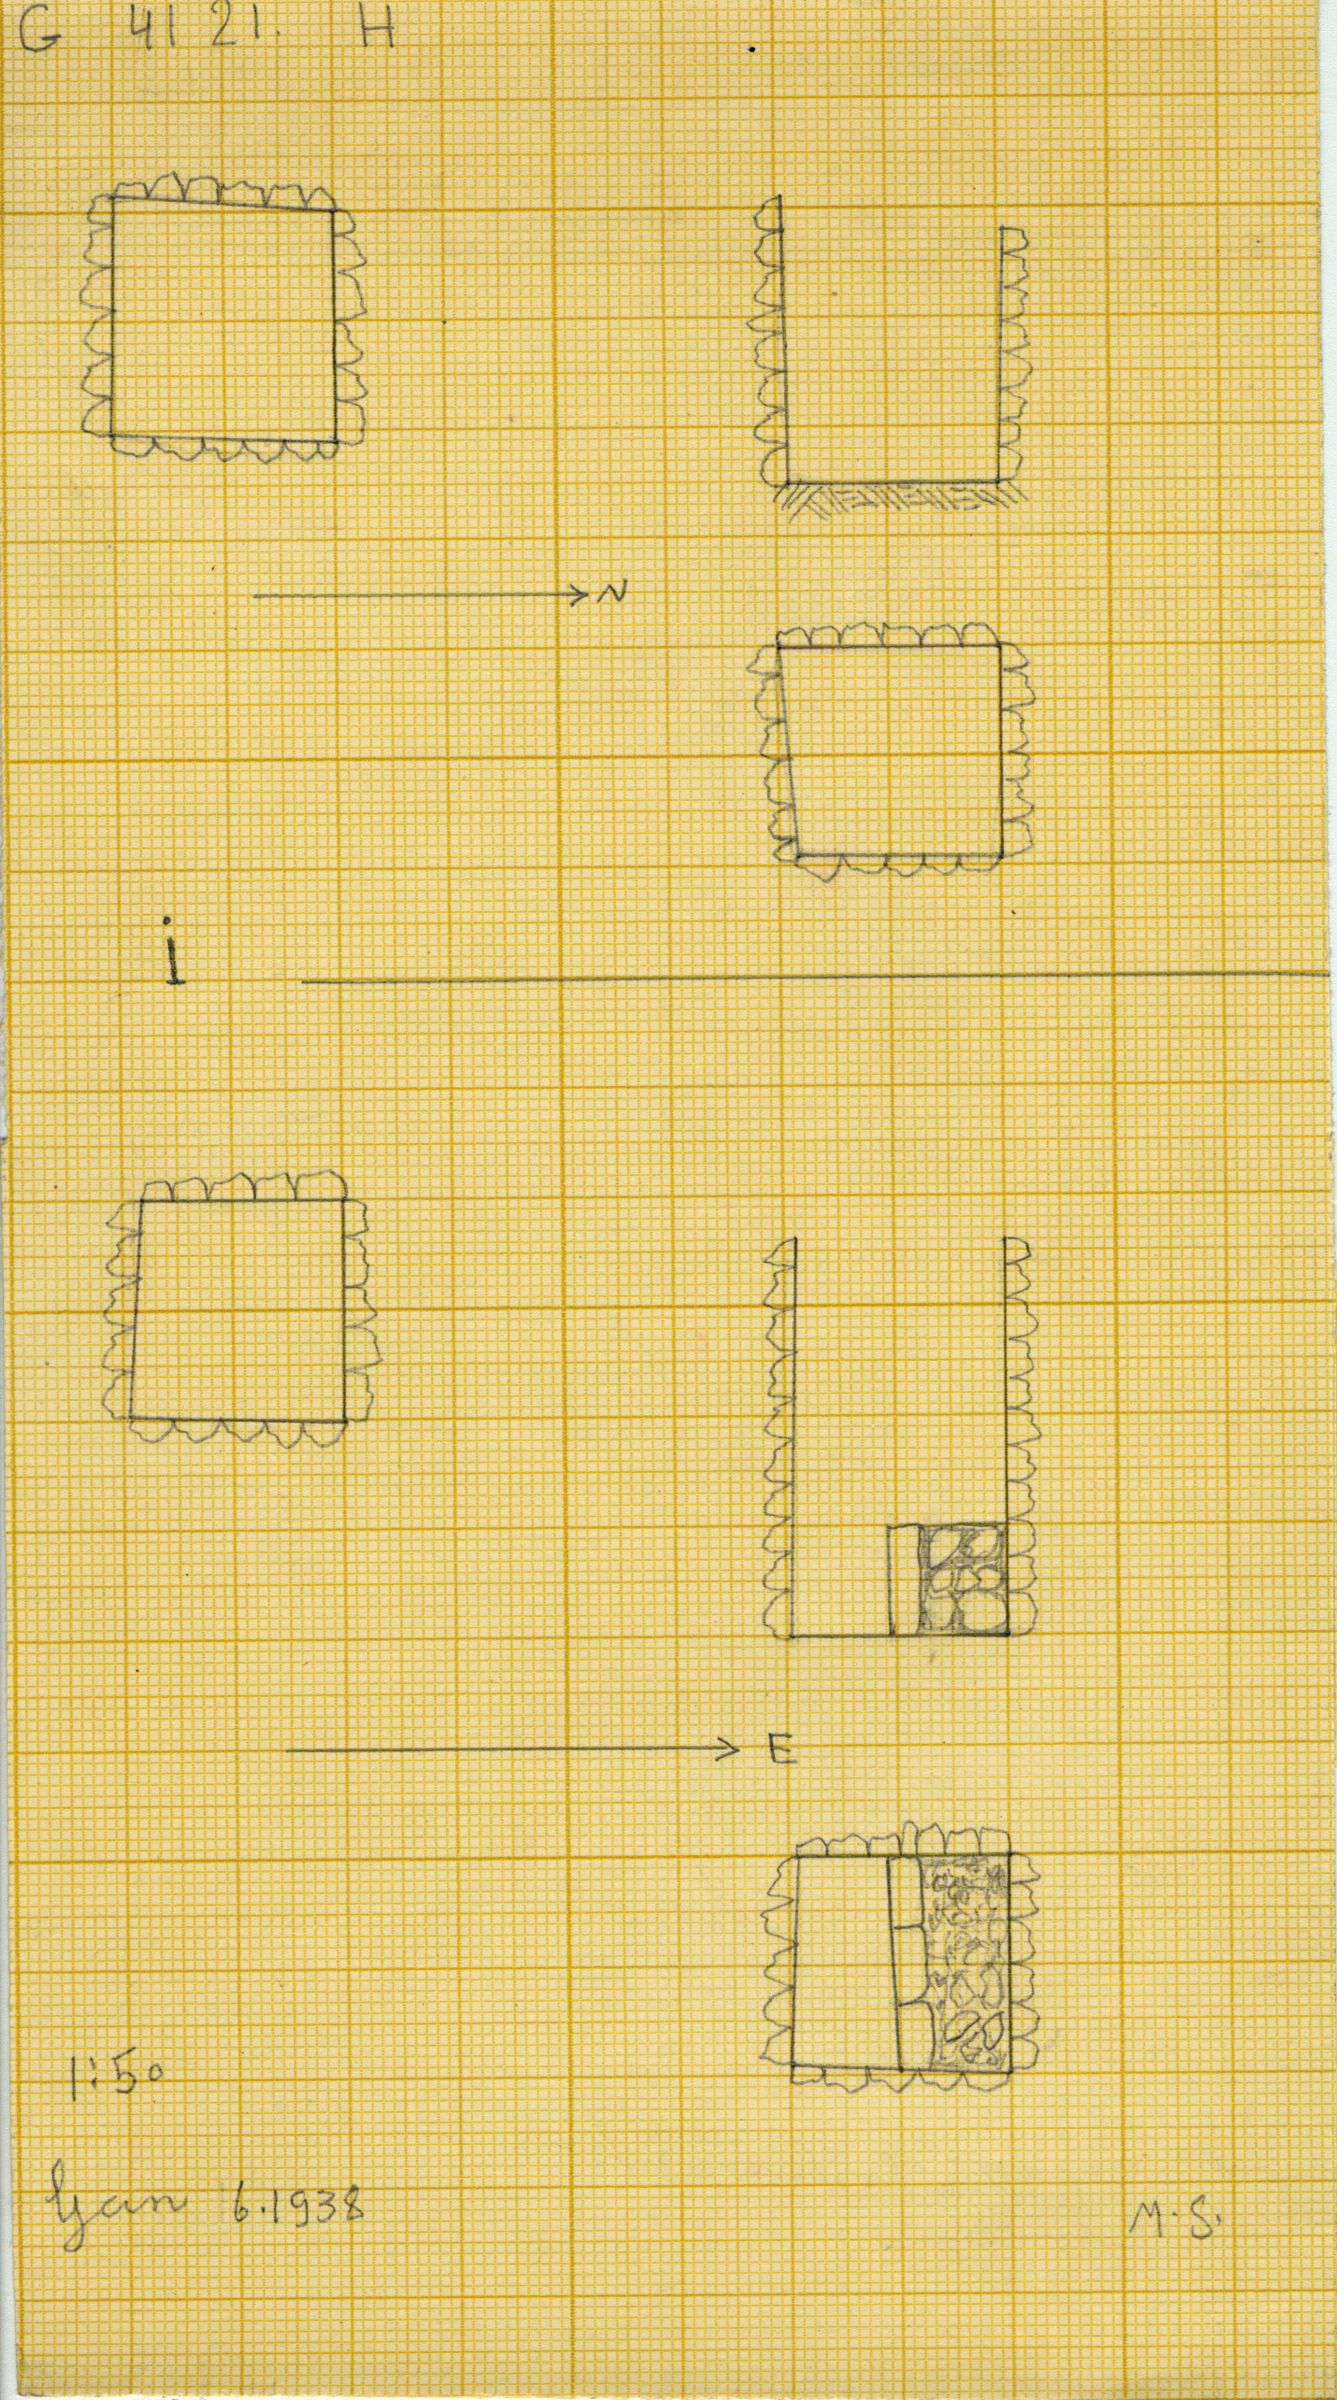 Maps and plans: G 4121, Shaft H and I